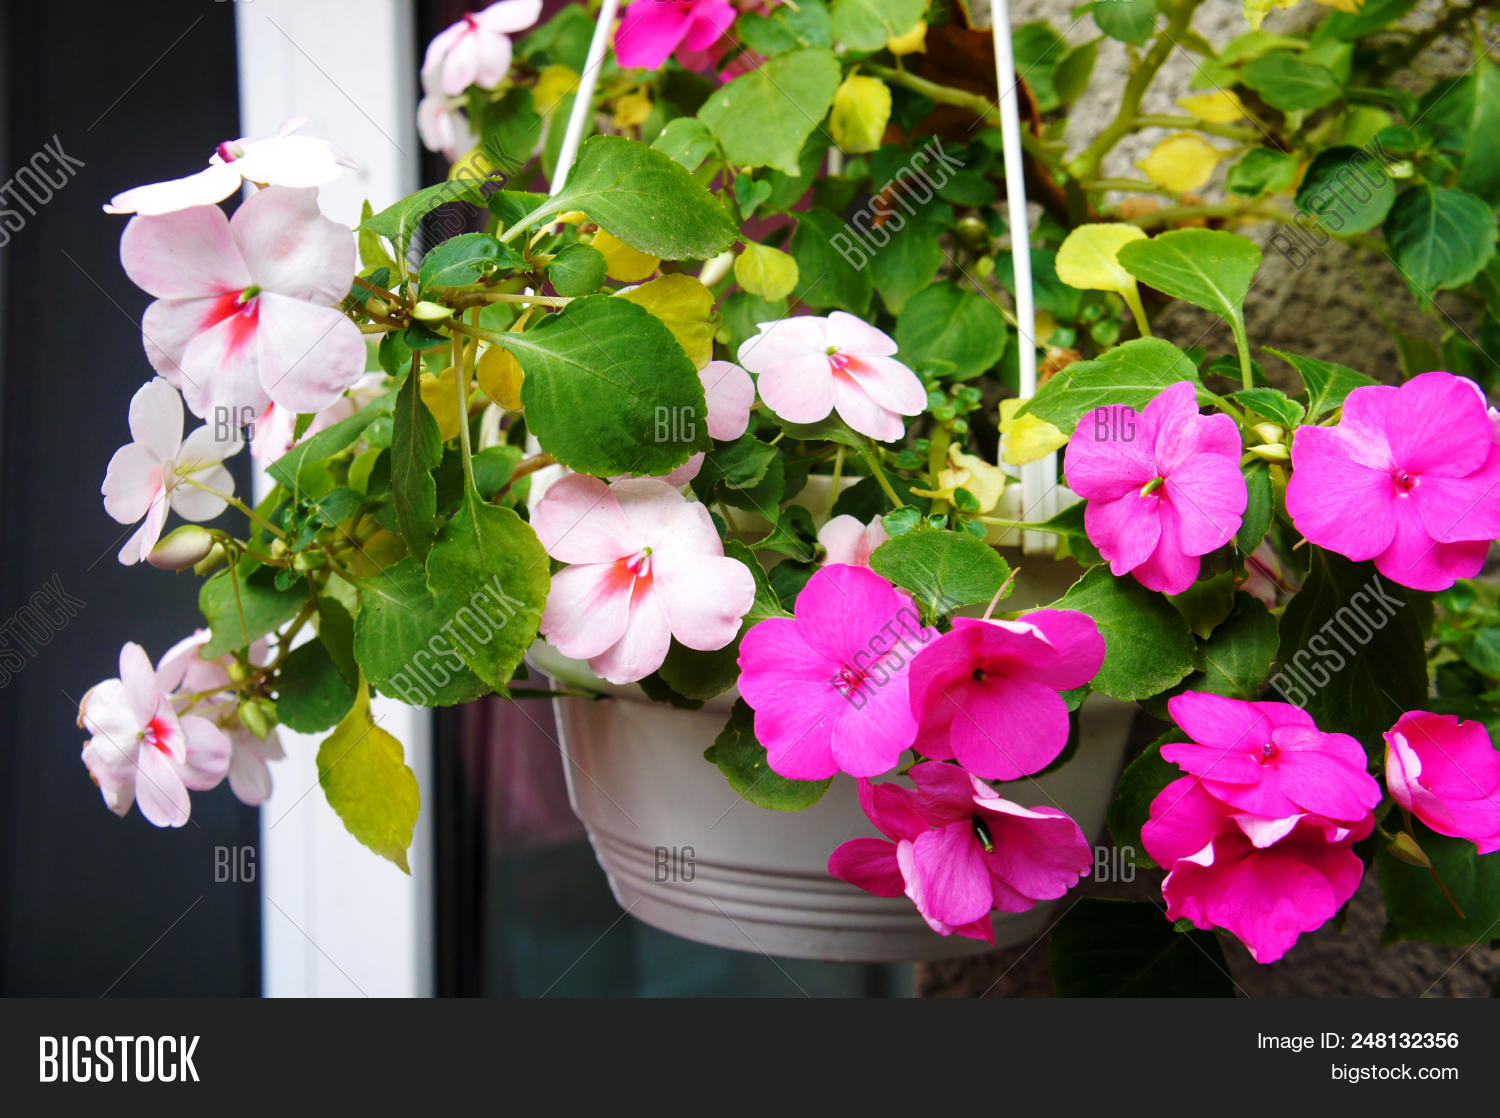 Pink Flowers Flower Image Photo Free Trial Bigstock